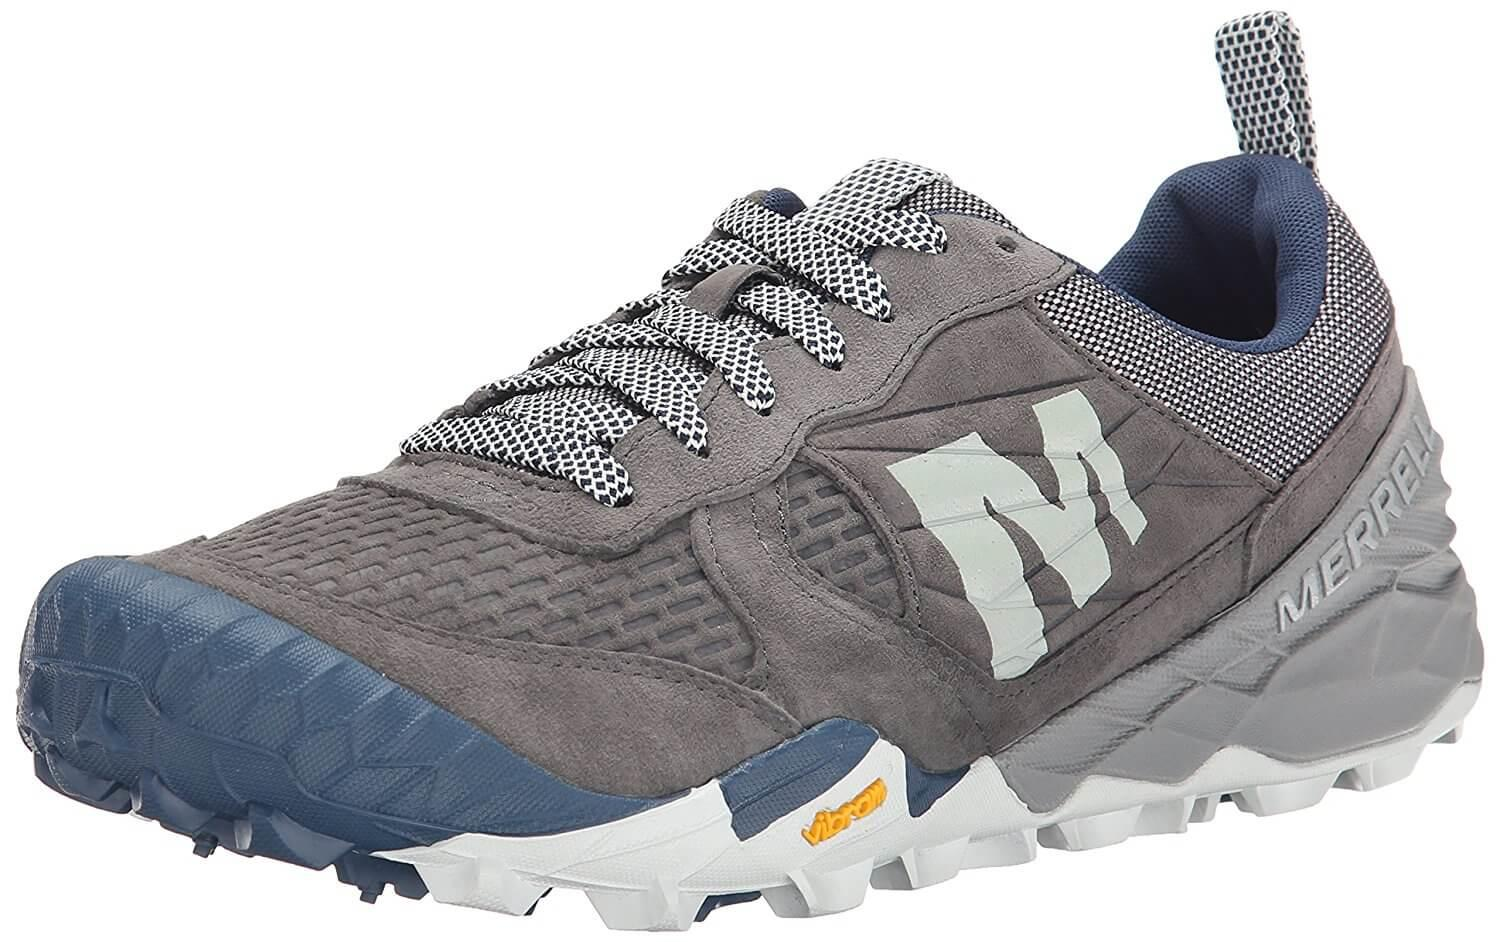 All Out Terra Turf, Mens Low-Top Sneakers Merrell